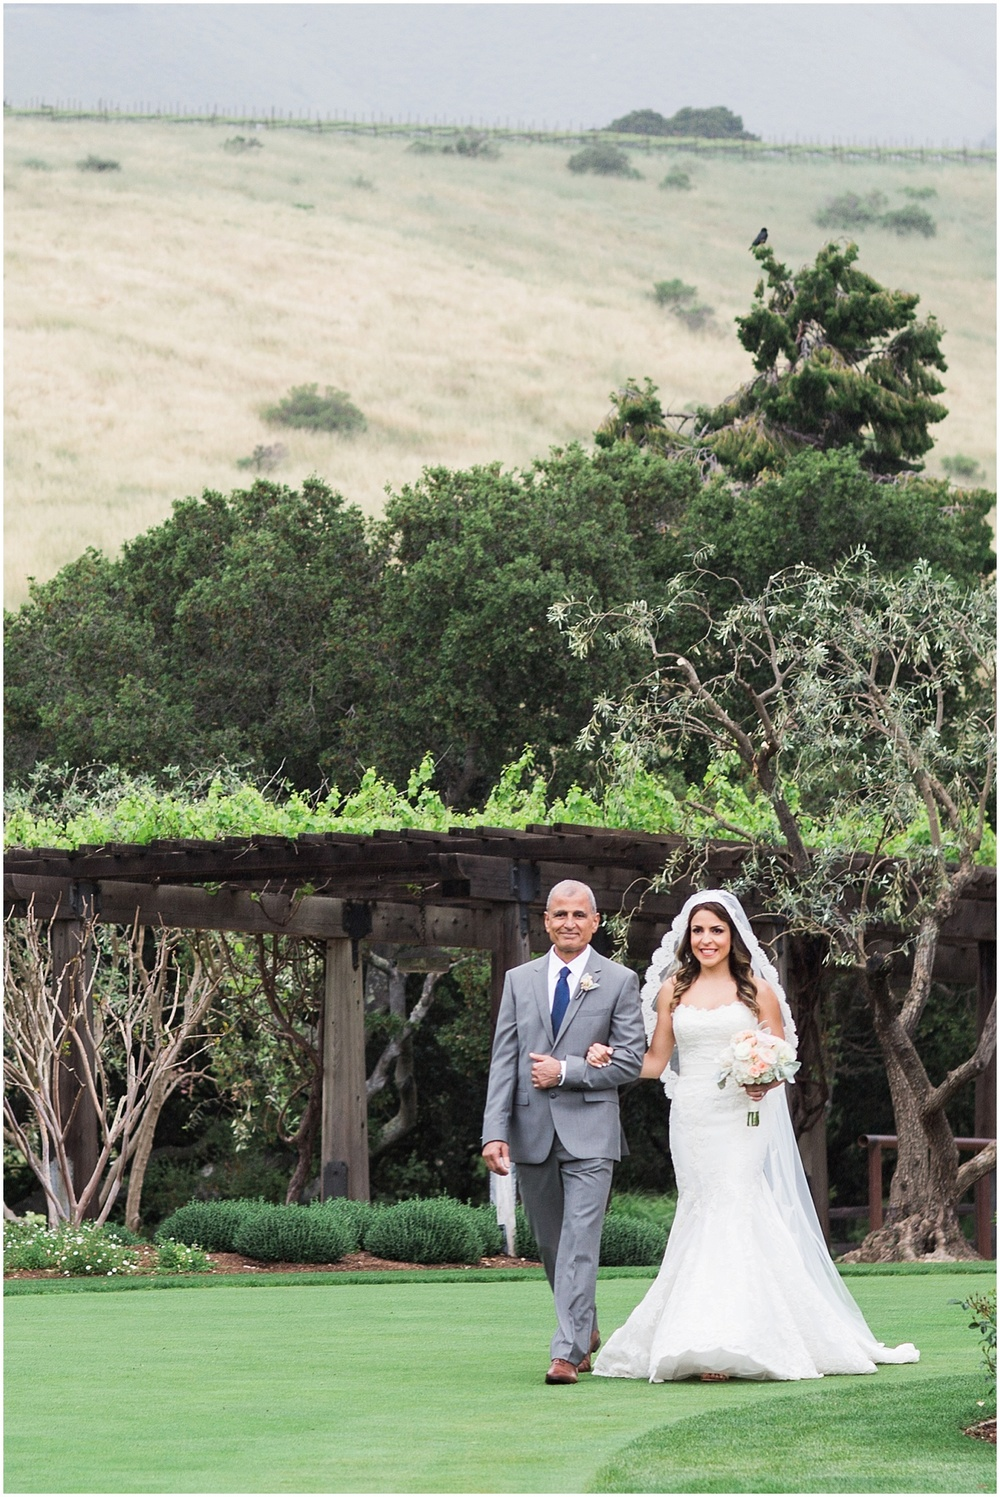 Carmel_holman_ranch_wedding_photographer-021.jpg